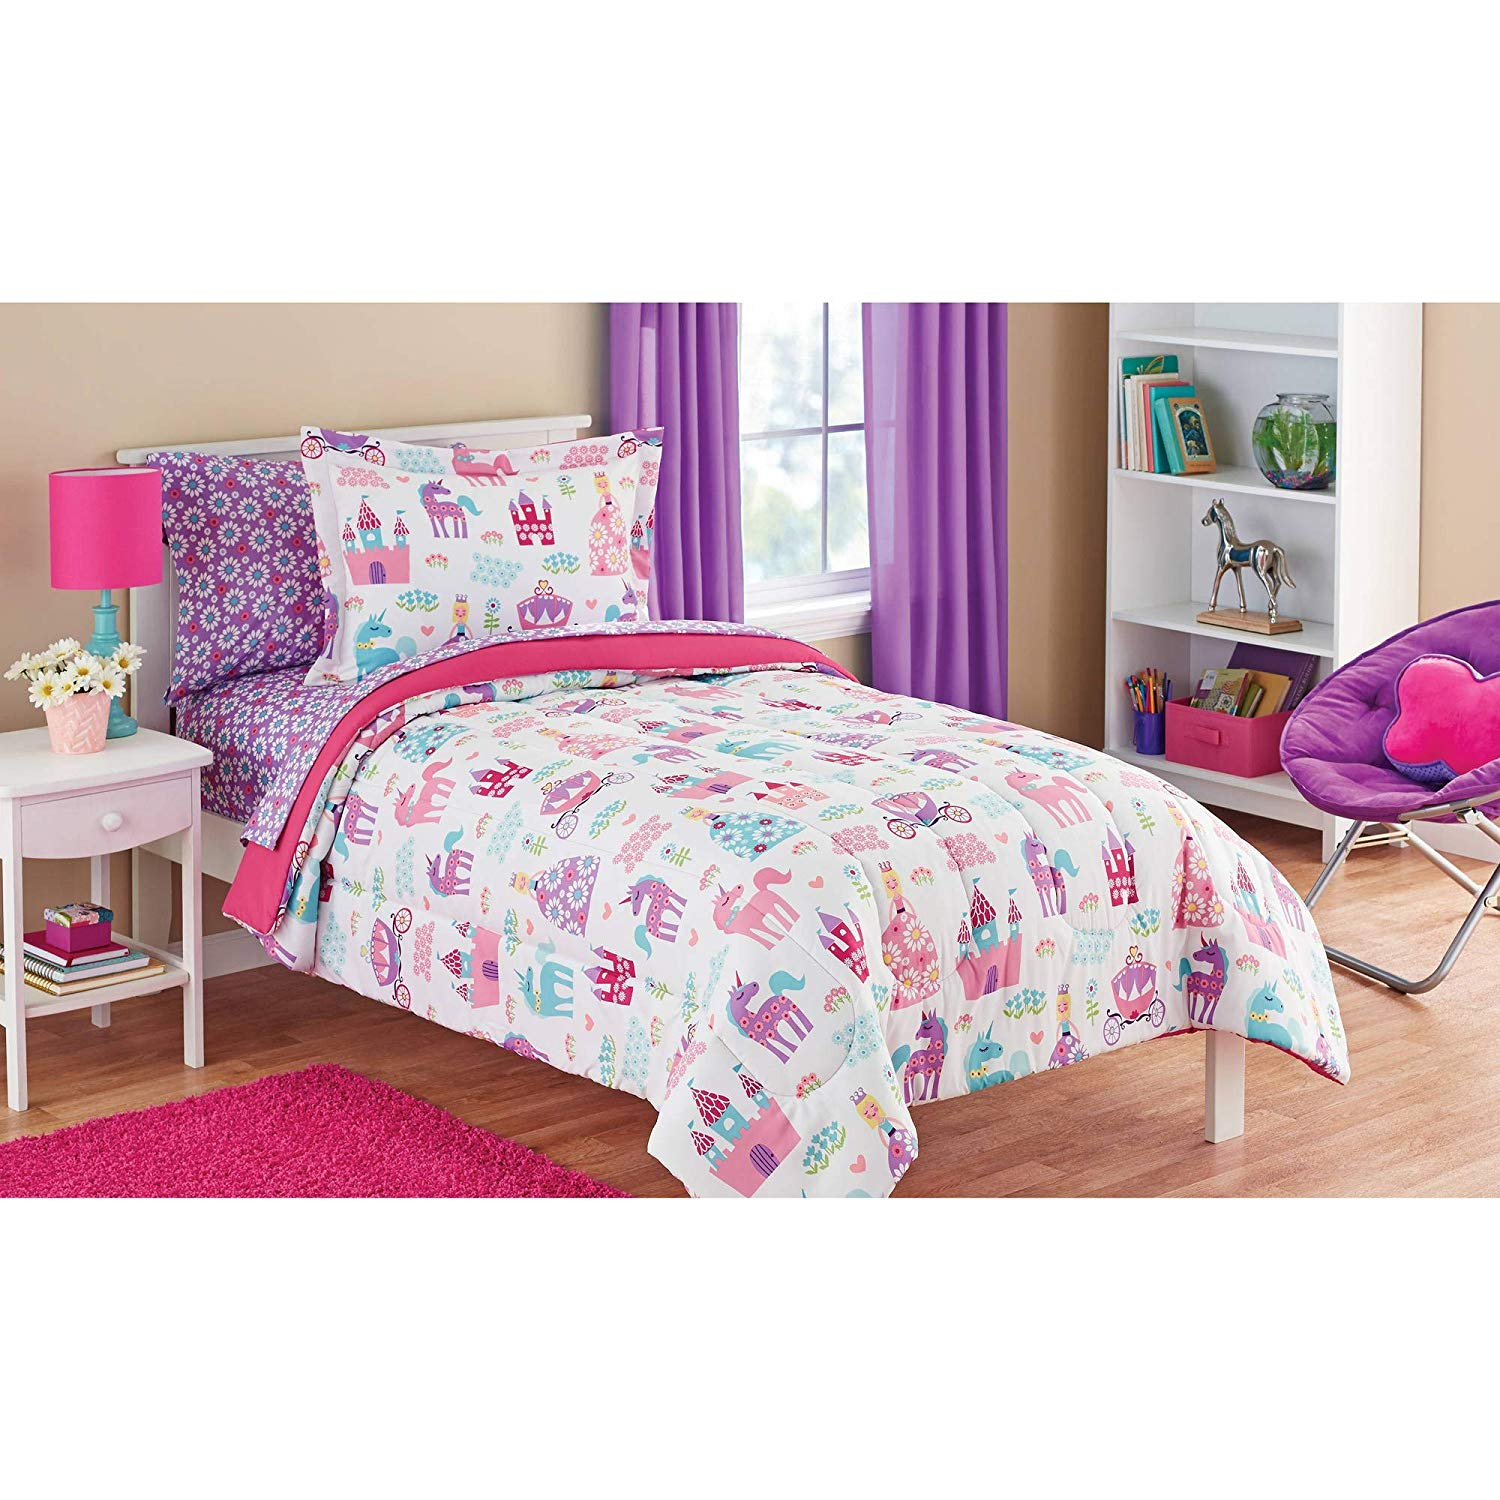 5 Piece Twin White Pink Purple Assorted Unicorn Dream Princess Castle Bedding Floral Chariot Carriages Magical Horses Clouds All Over Flowers Kids Girls Teen Believe Dancing Mythical Enchanted Pegasus